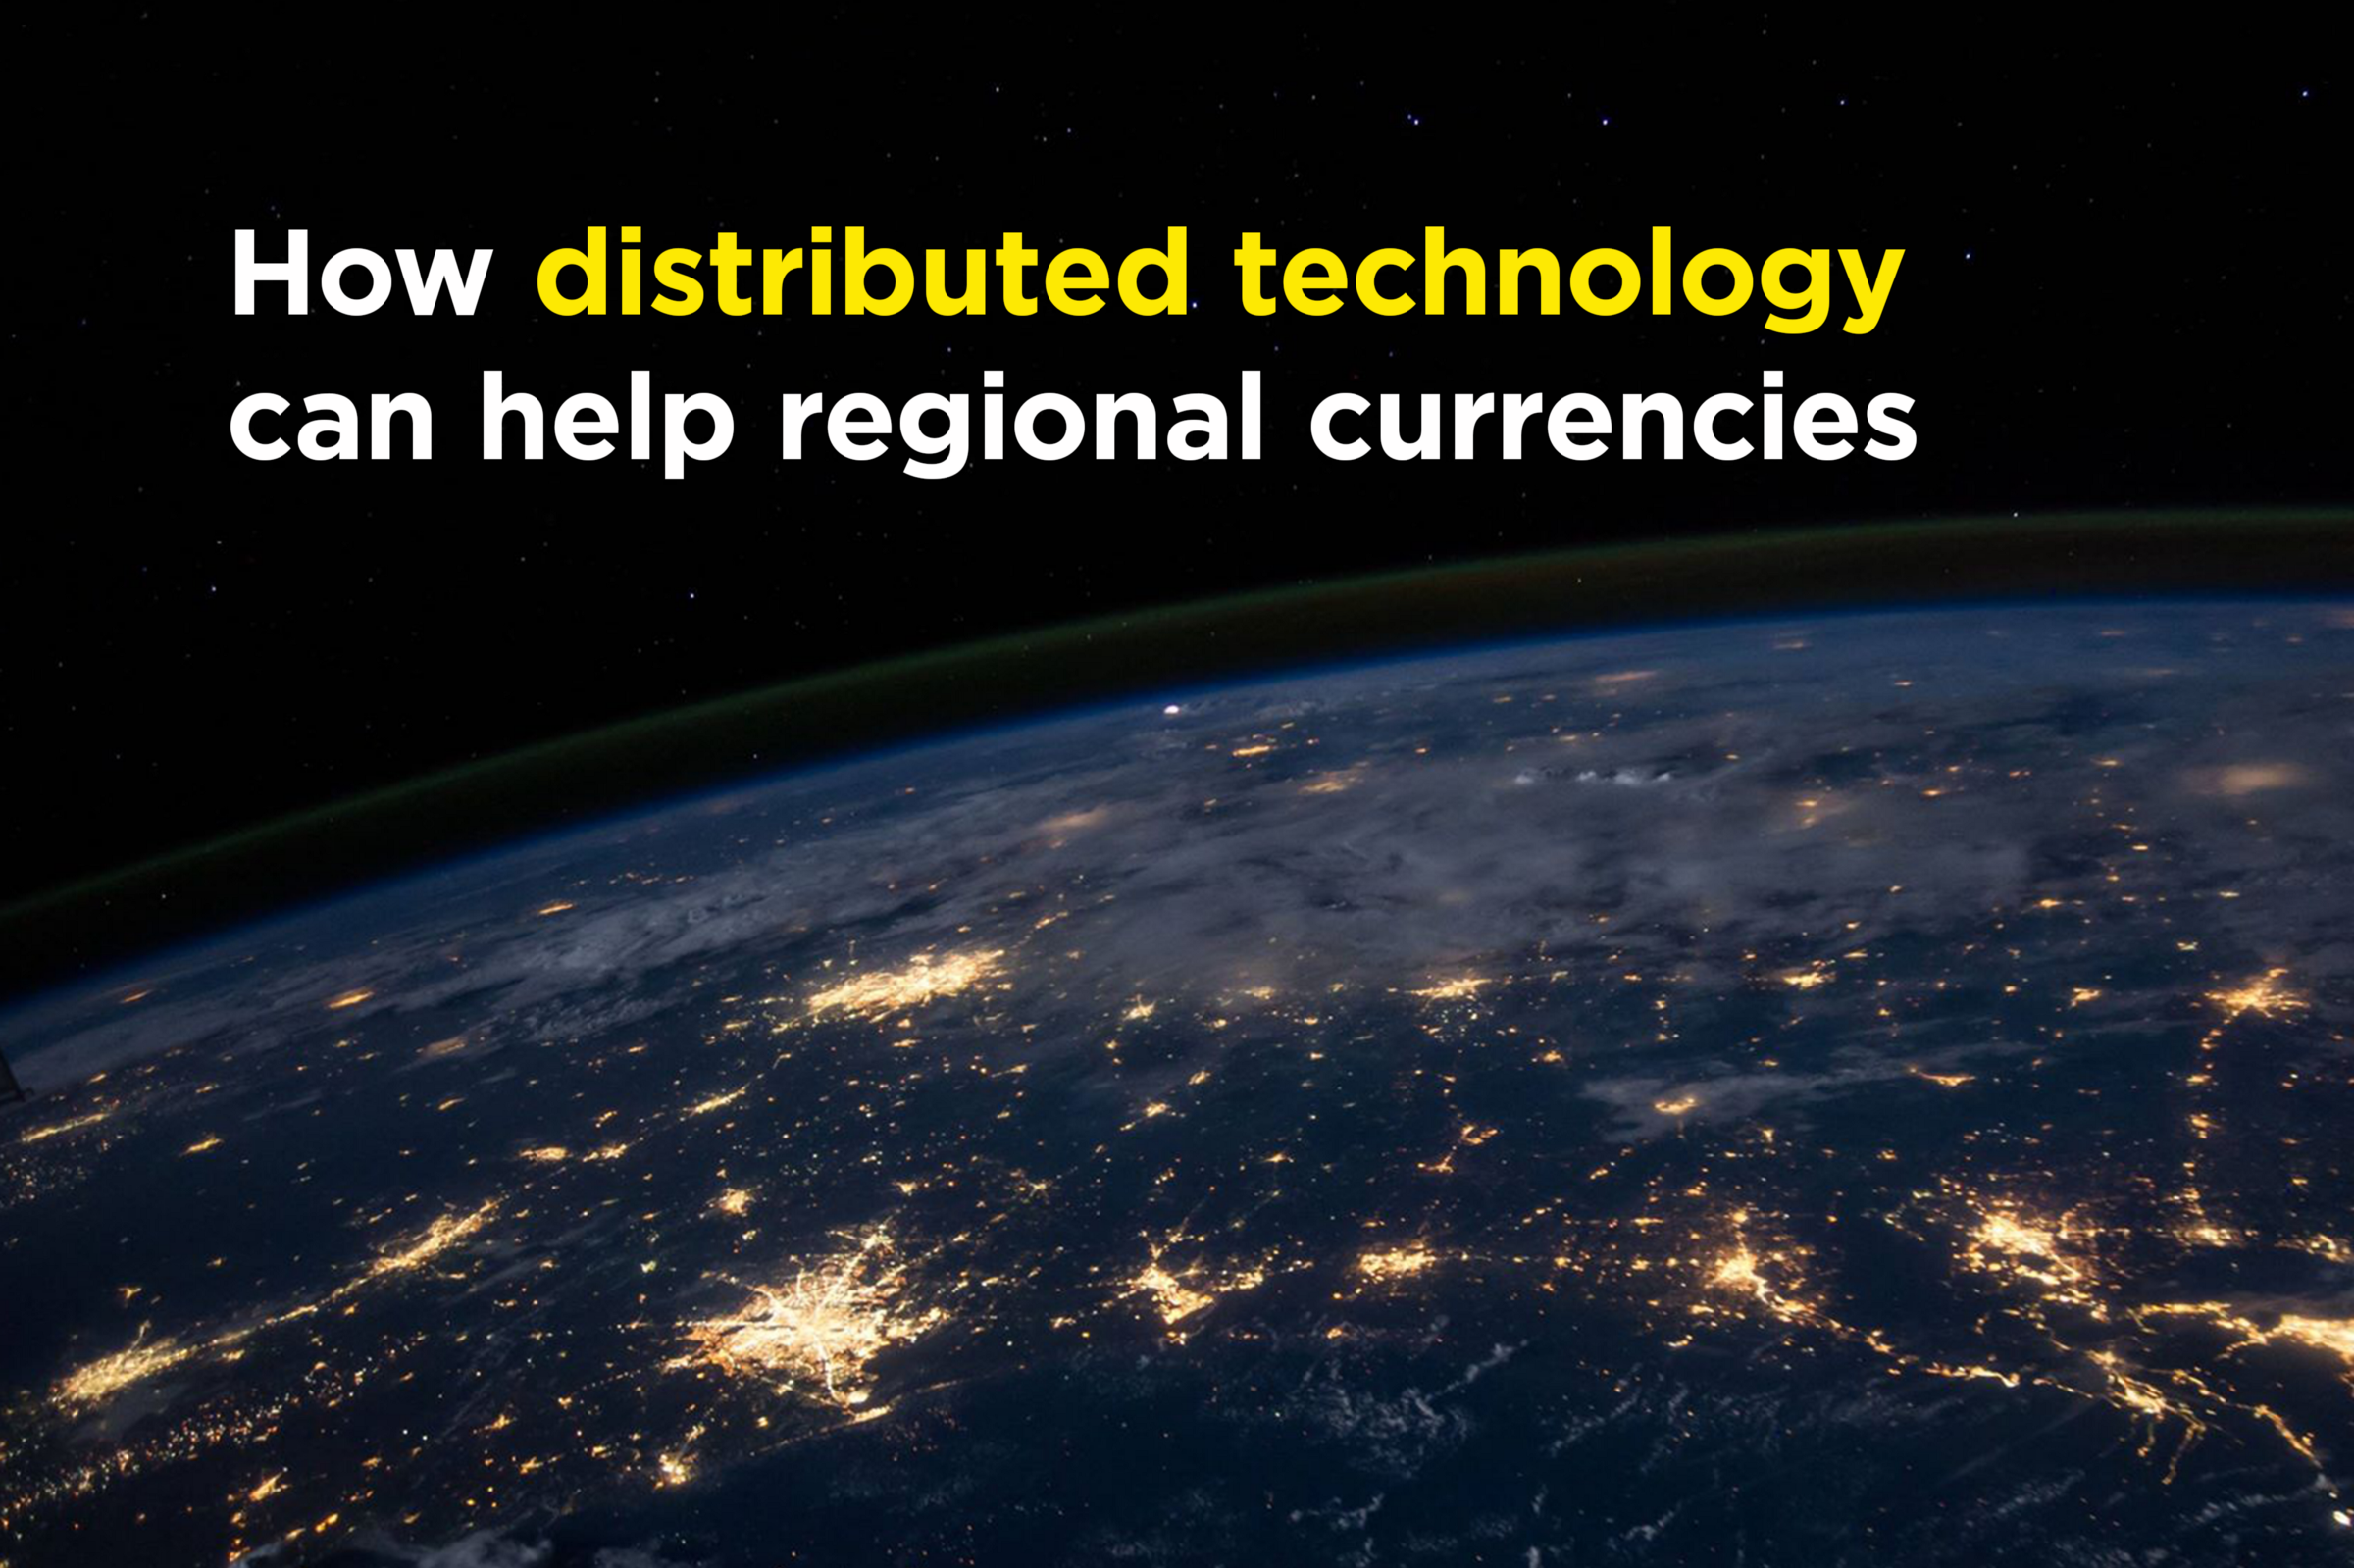 /how-distributed-technology-can-help-regional-currencies-2b8341c23b59 feature image